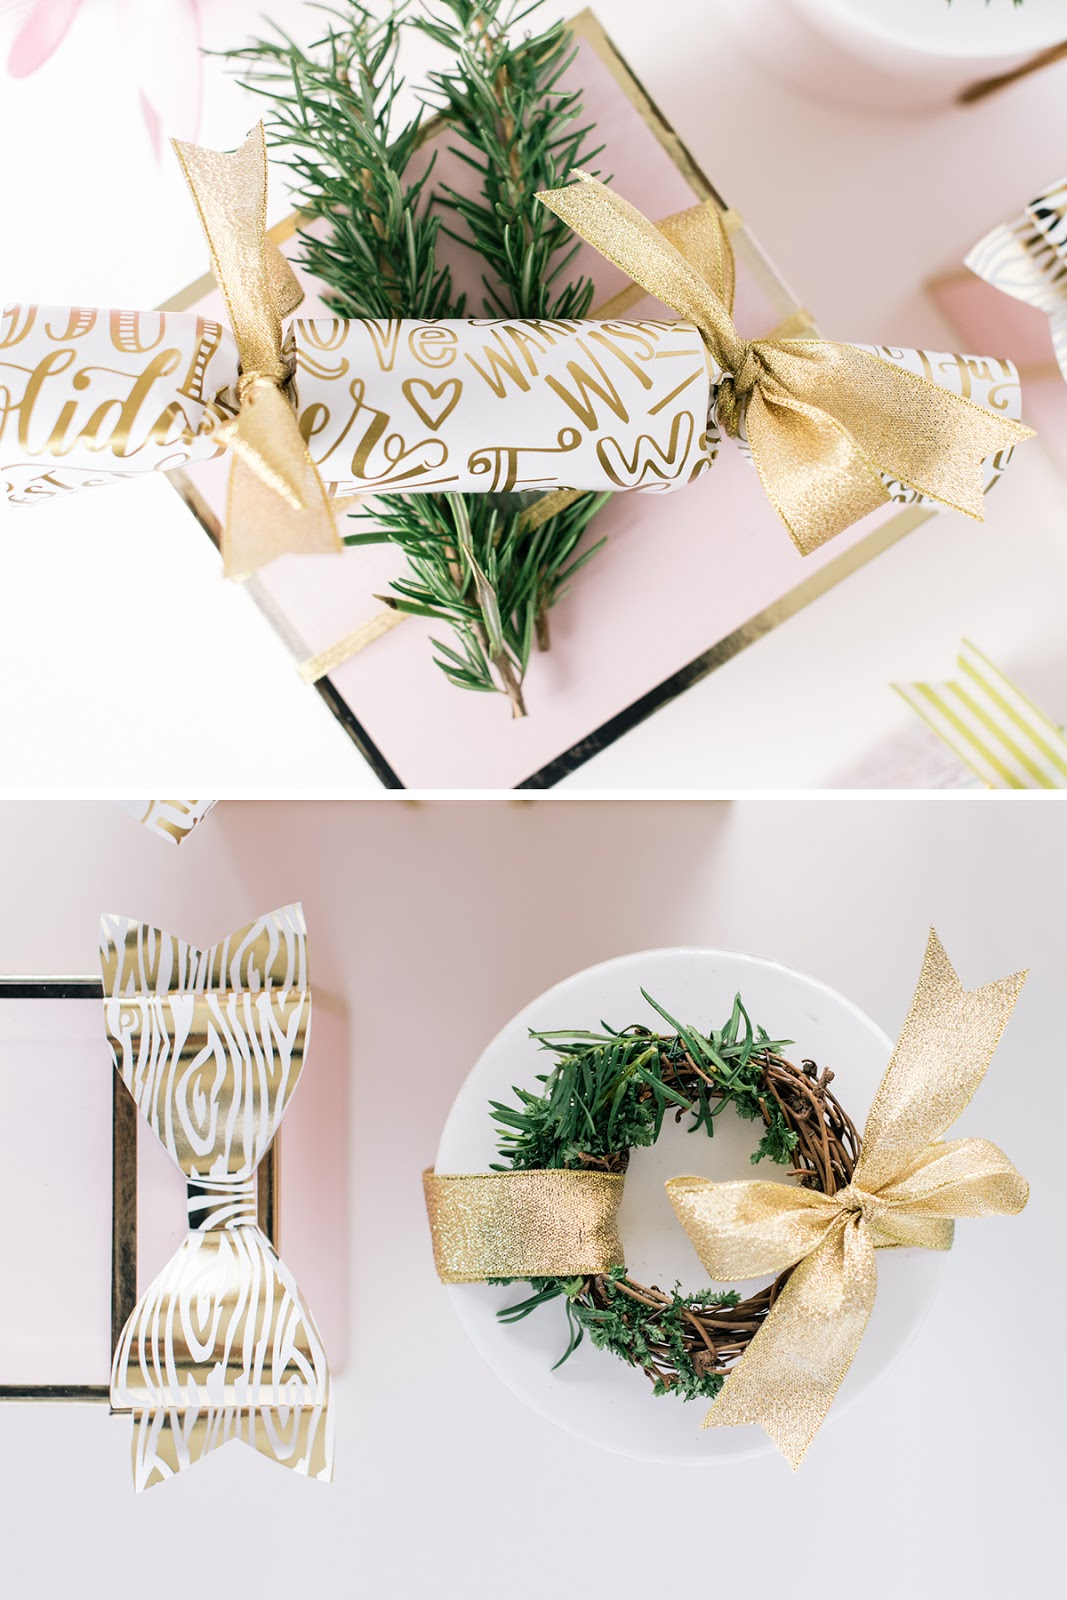 gift wrapping inspiration from Creative Bag